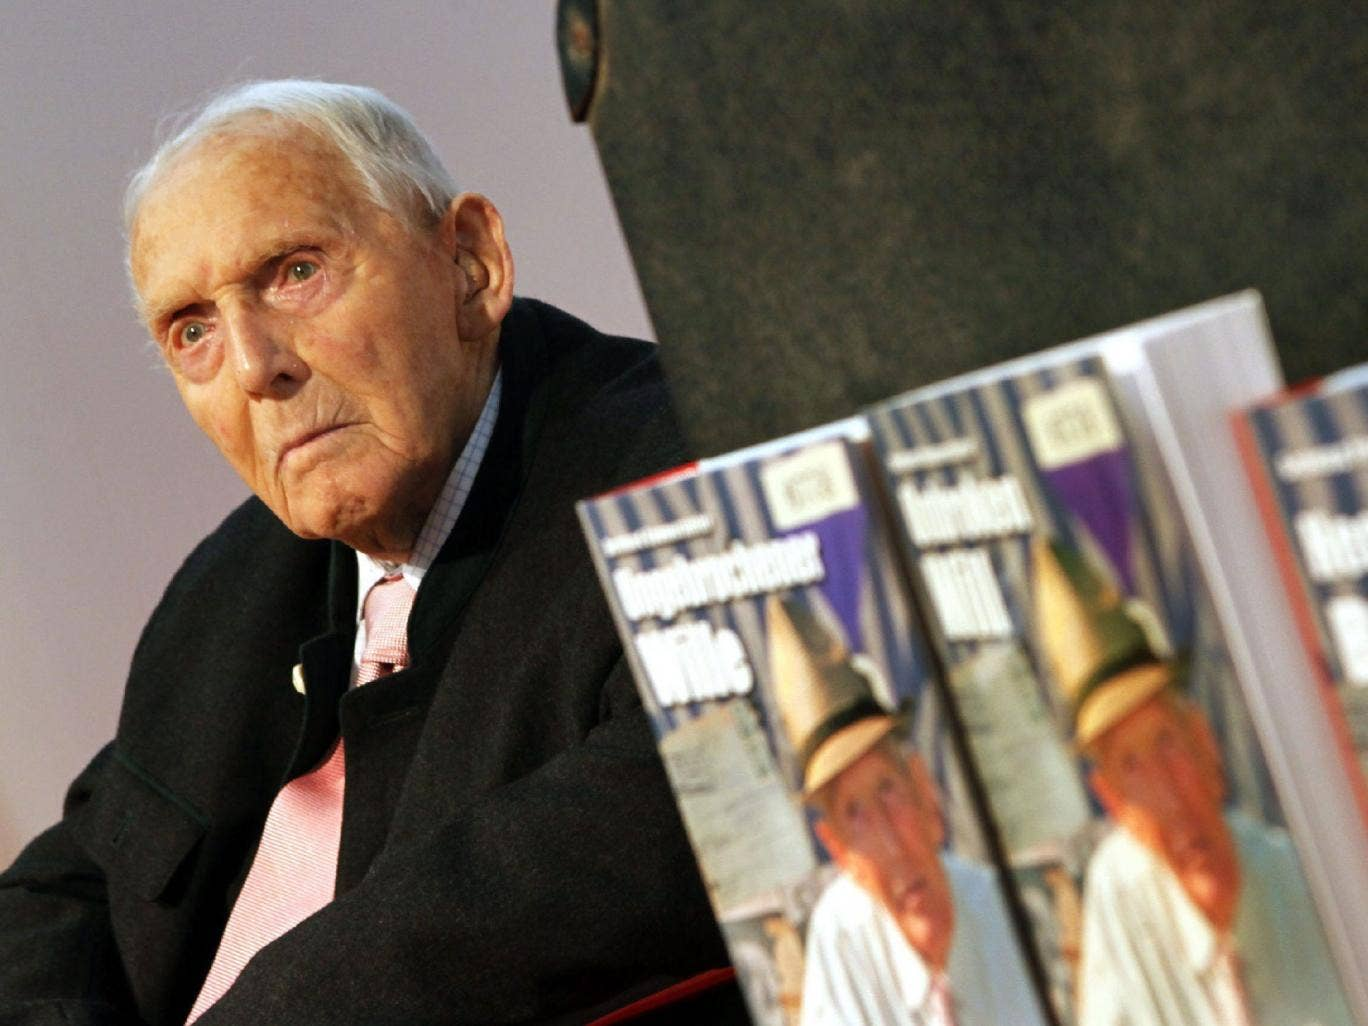 'Unbroken Will': Engleitner in 2009 at the Frankfurt Book Fair with copies of his biography